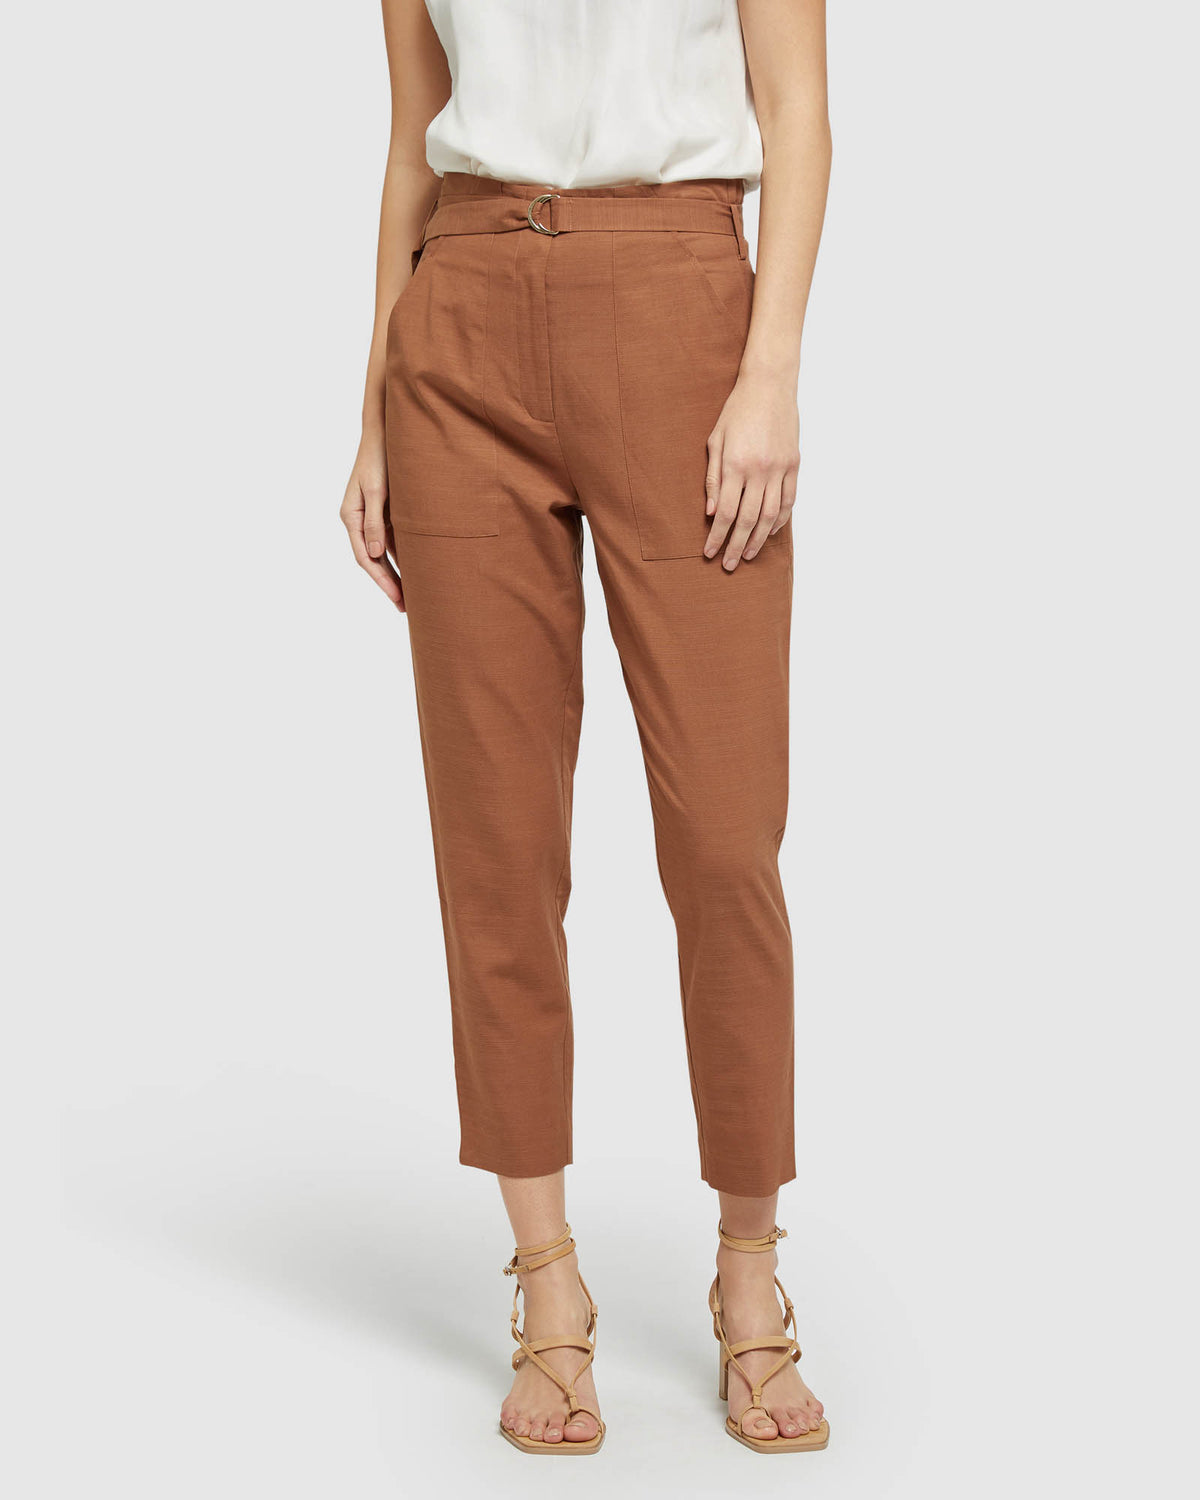 BELLA PAPERBAG PANTS SPICE